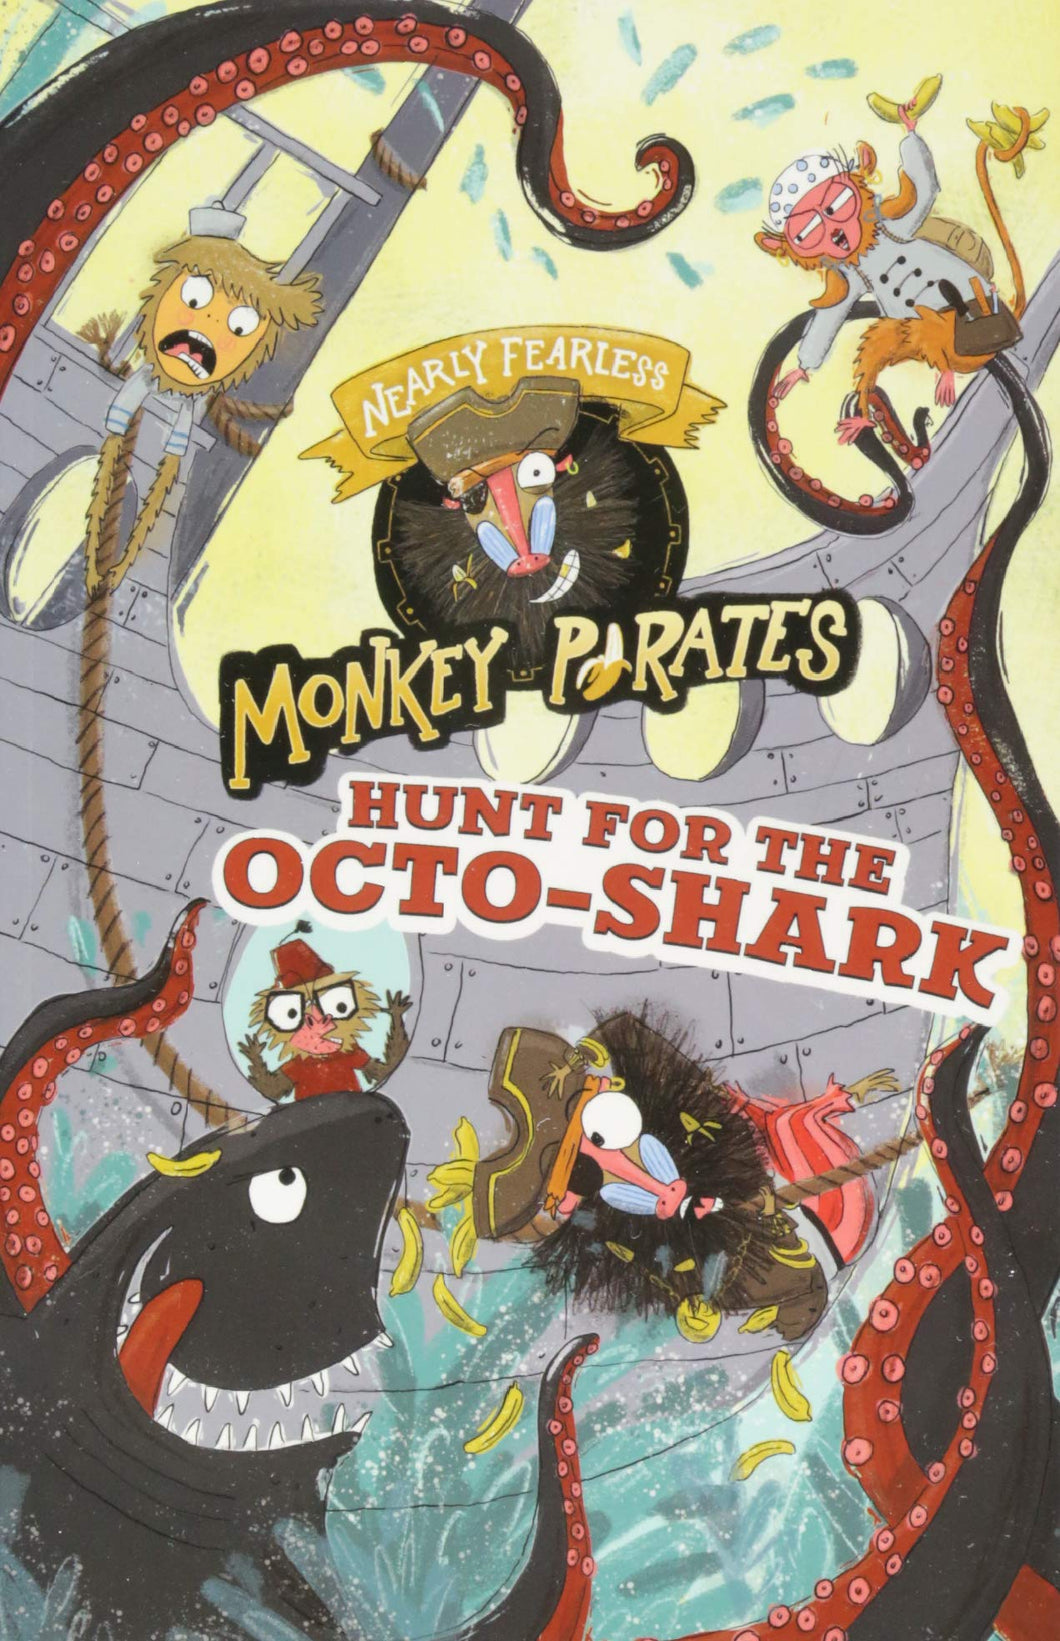 Nearly Fearless Monkey Pirates: Hunt for the Octo-Shark